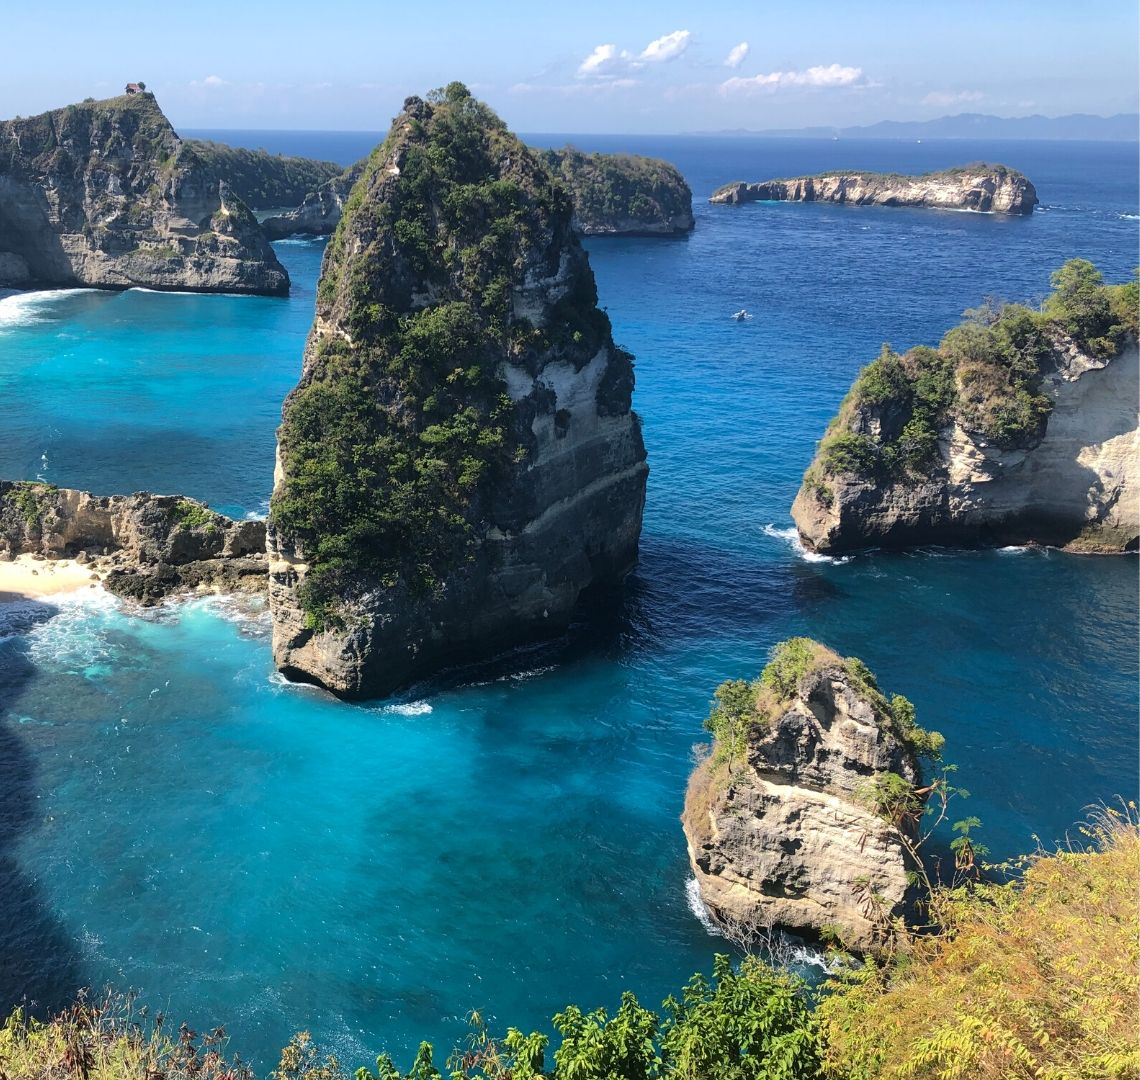 Best Secret Islands in Indonesia - the photo is taken from the top of a cliff. At the bottom you can see the grasses and then nothing as the cliff face drops away. The sea below is bright blue and there are really tall rocky islands of varying sizes with trees on top and growing out the sides. In the distance is a tiny boat.